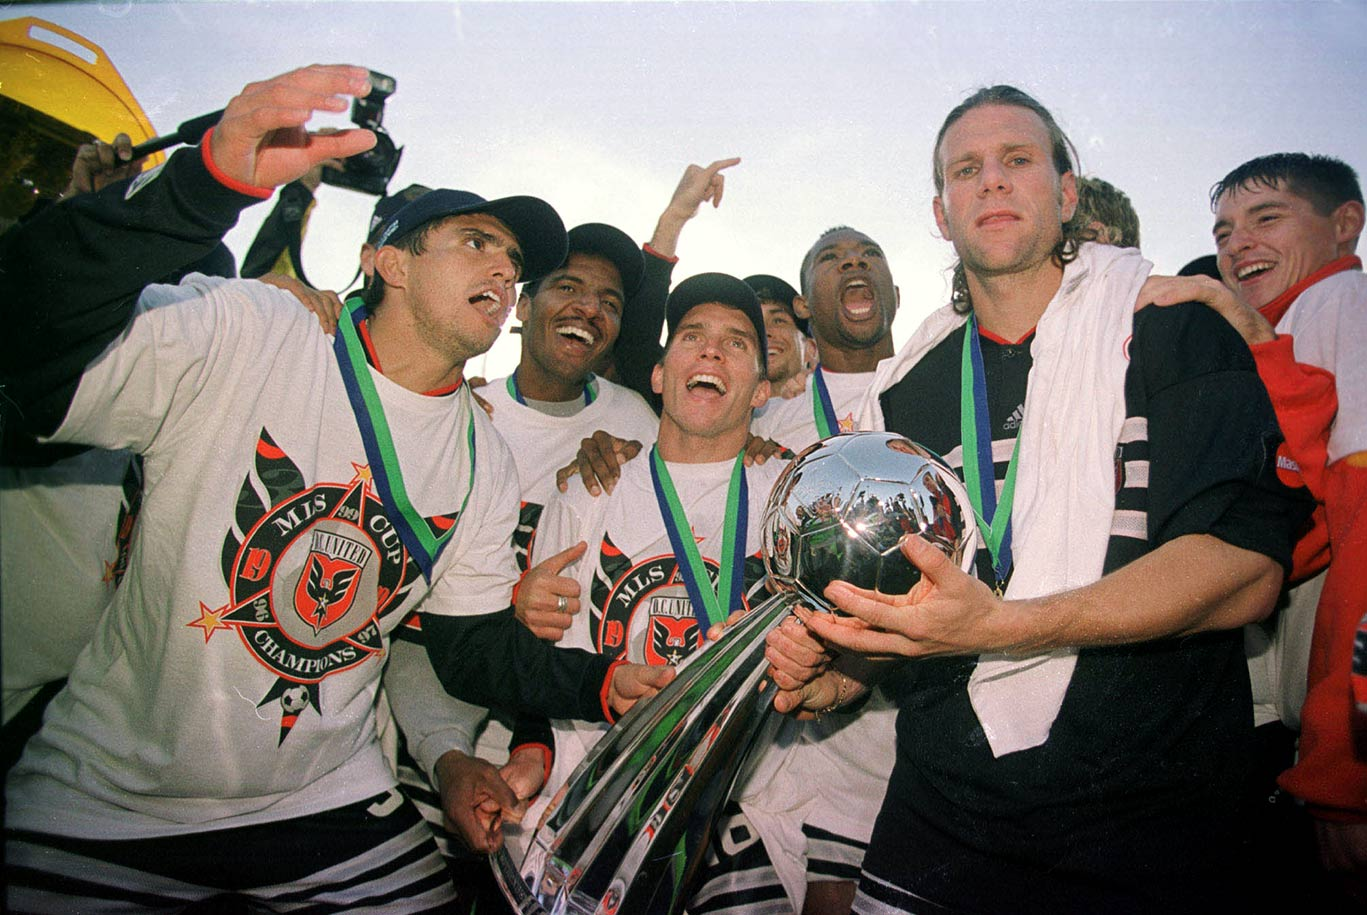 1999 — D.C. United (beat LA Galaxy 2-0)